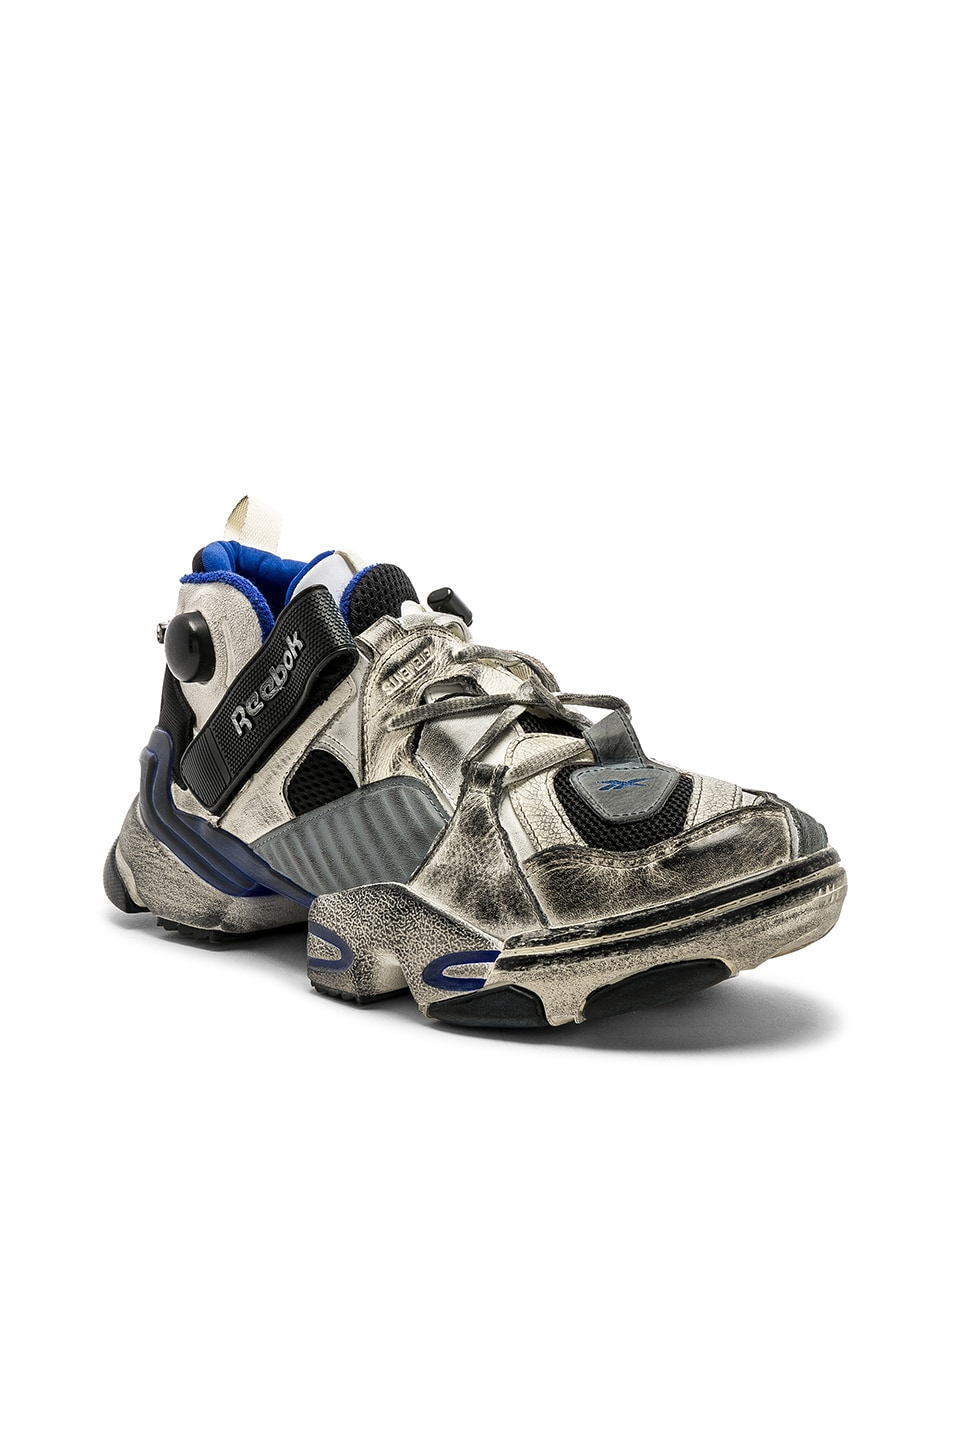 8fabe12df9d2 Image 1 of VETEMENTS x Reebok Genetically Modified Pumps in Multicolor